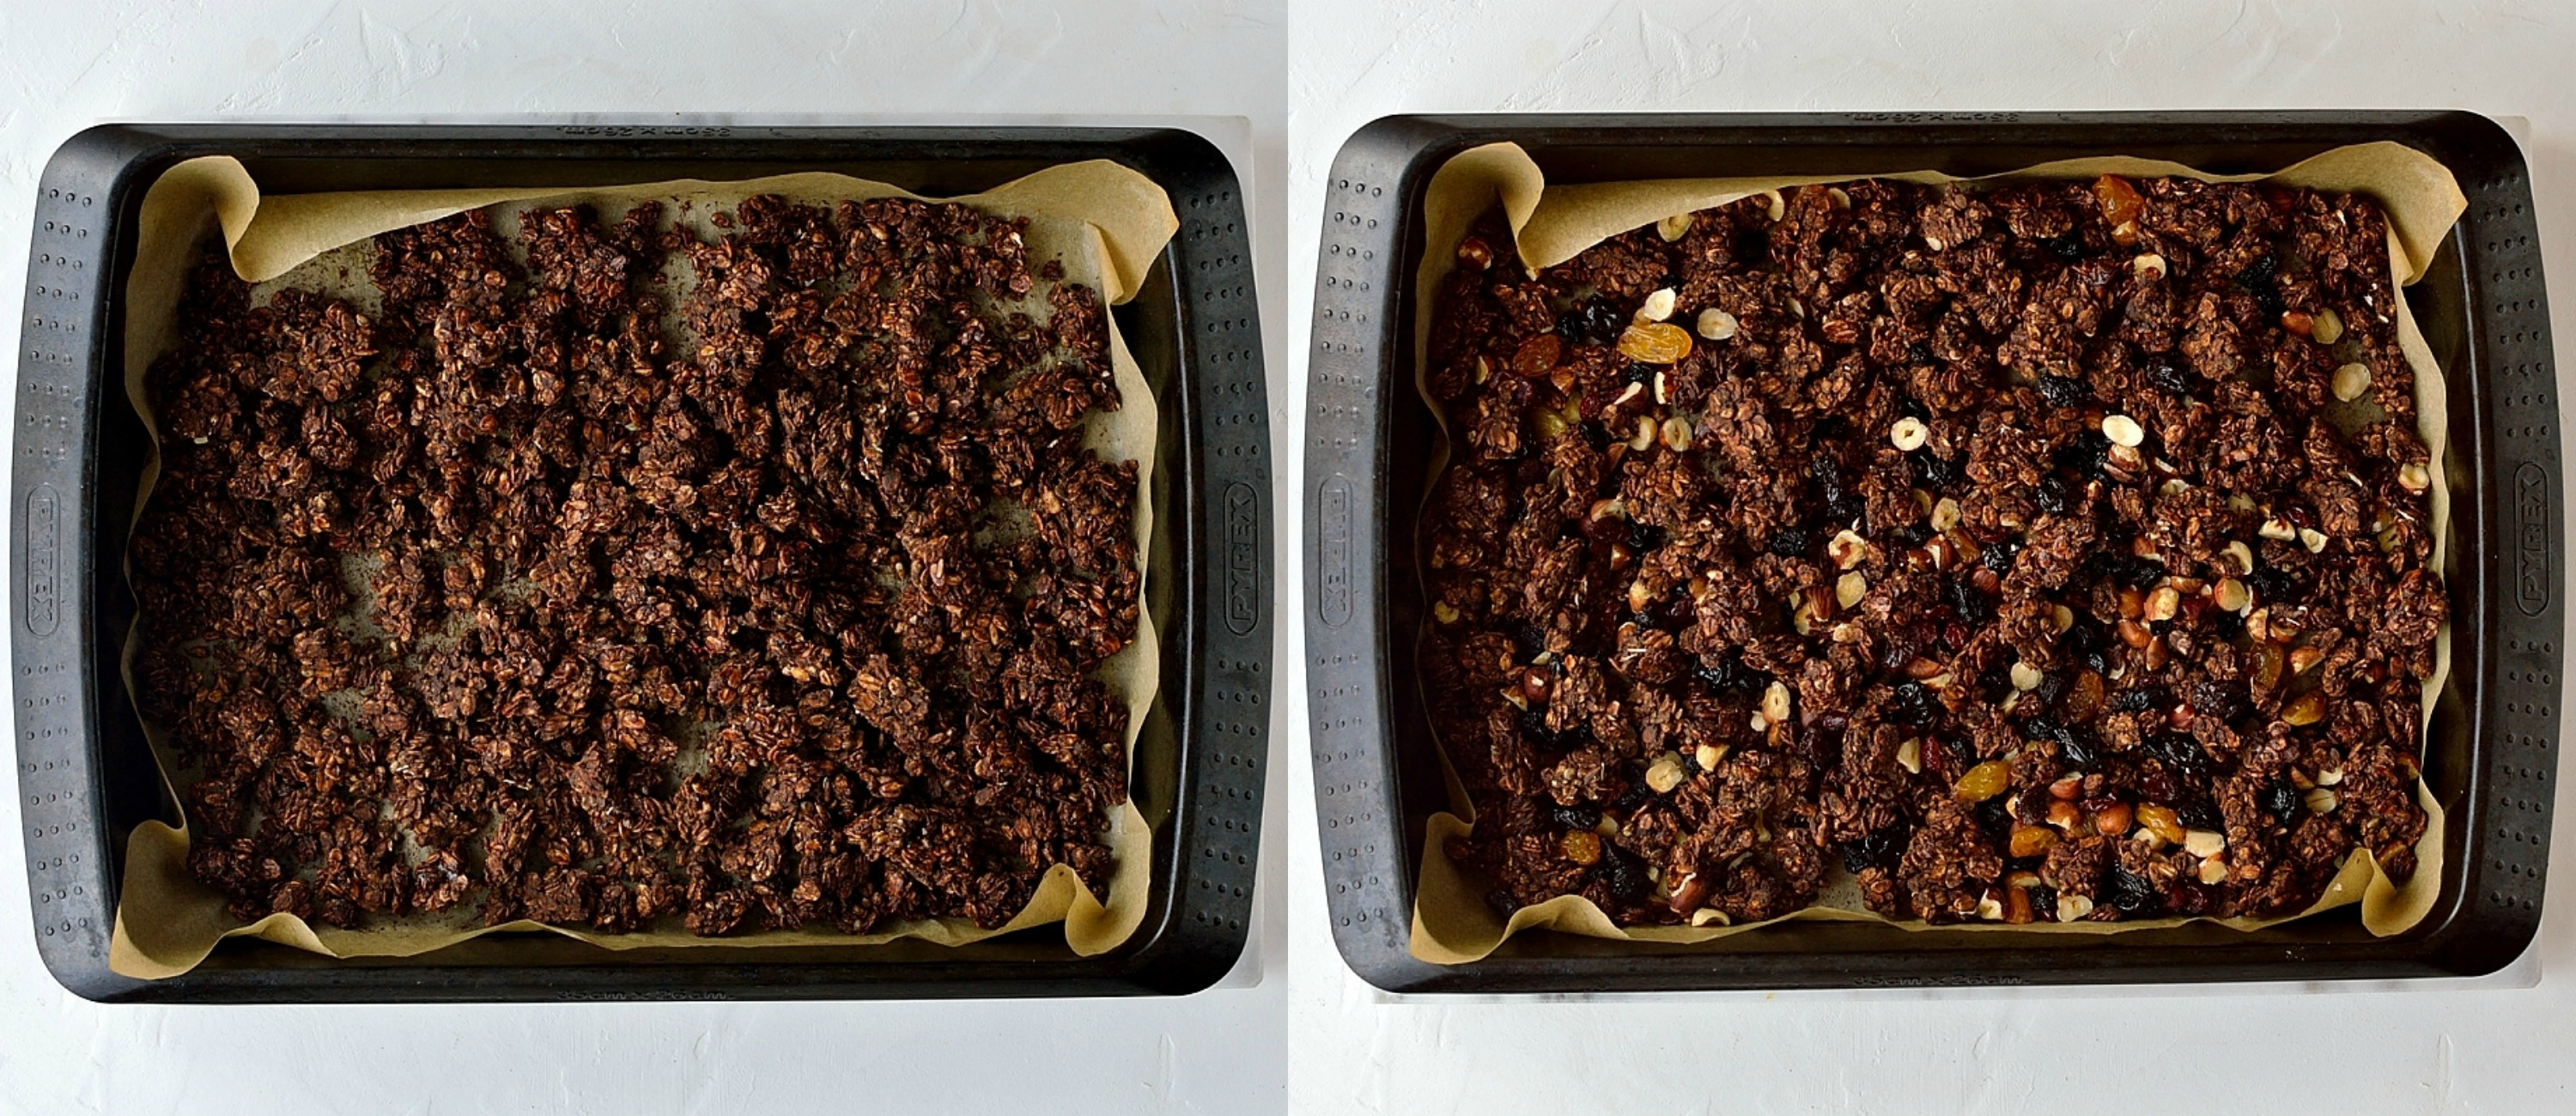 Chocolate berry granola step 6